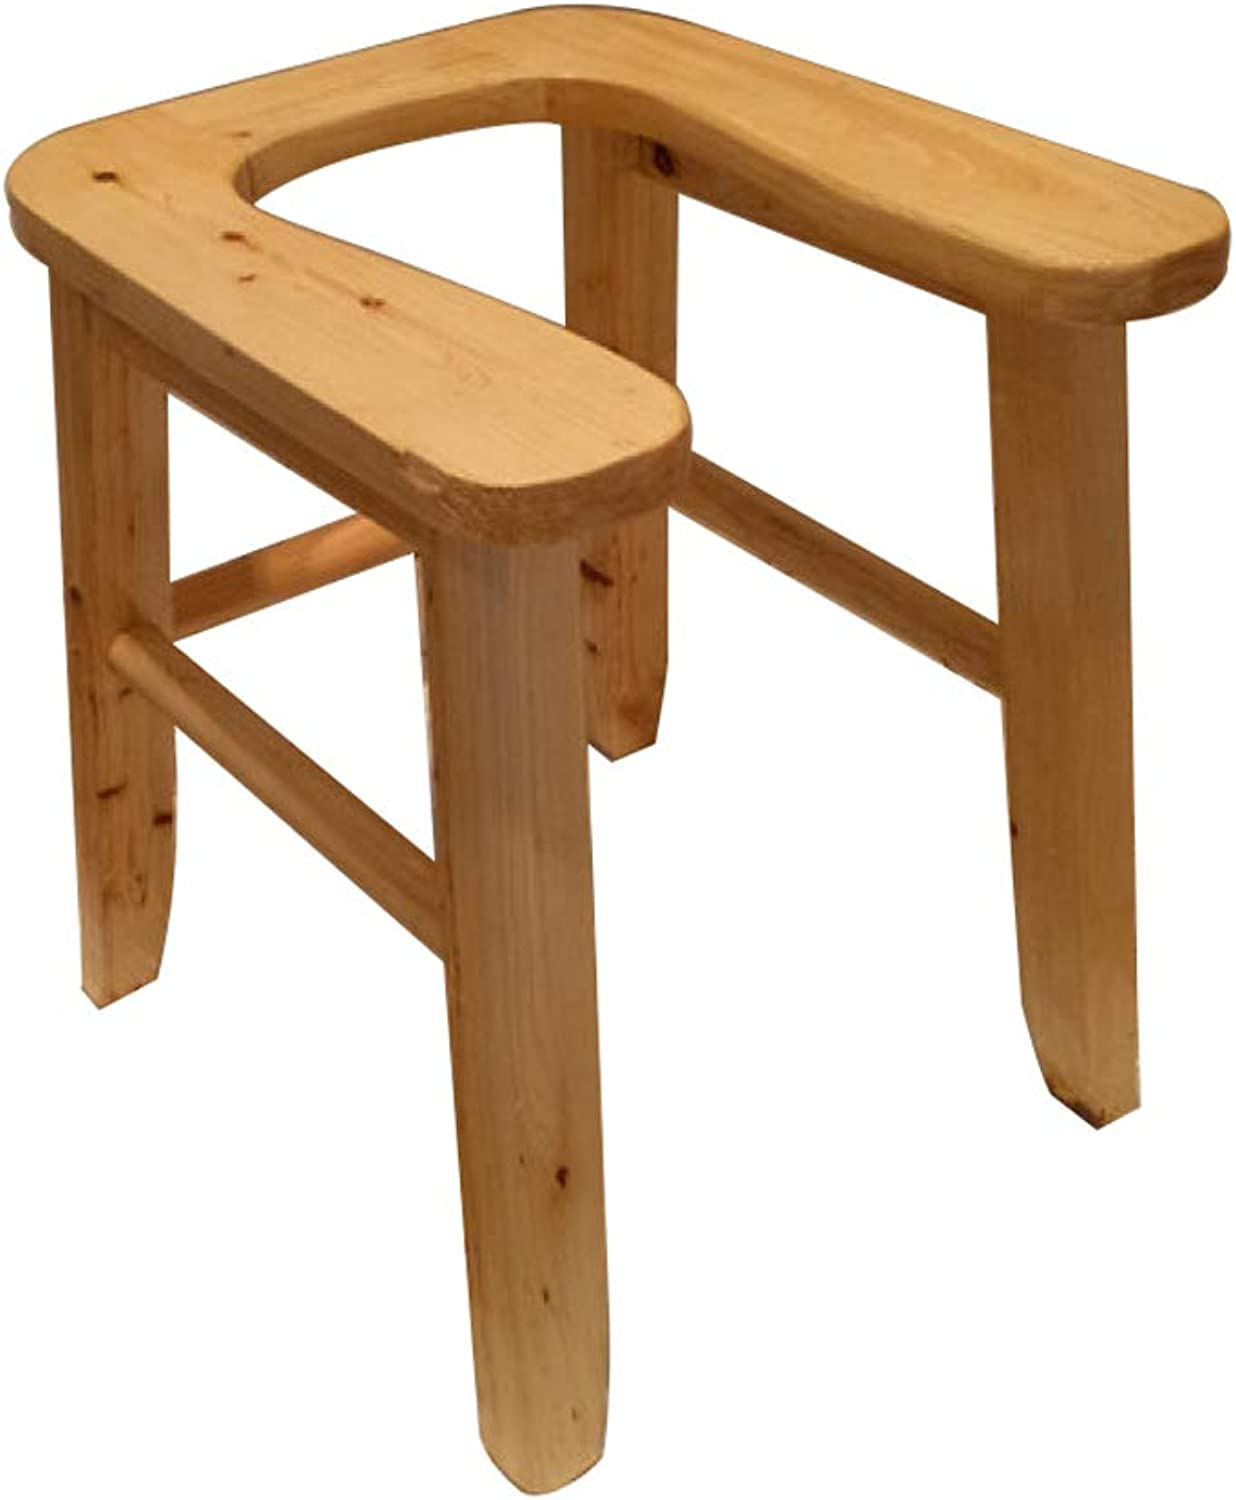 Toilet Chair Commode Chair Bathroom Stool Solid Wood U-Shaped Movable Toilet Stool for Elderly Pregnant Disabilities,A+Height25cm